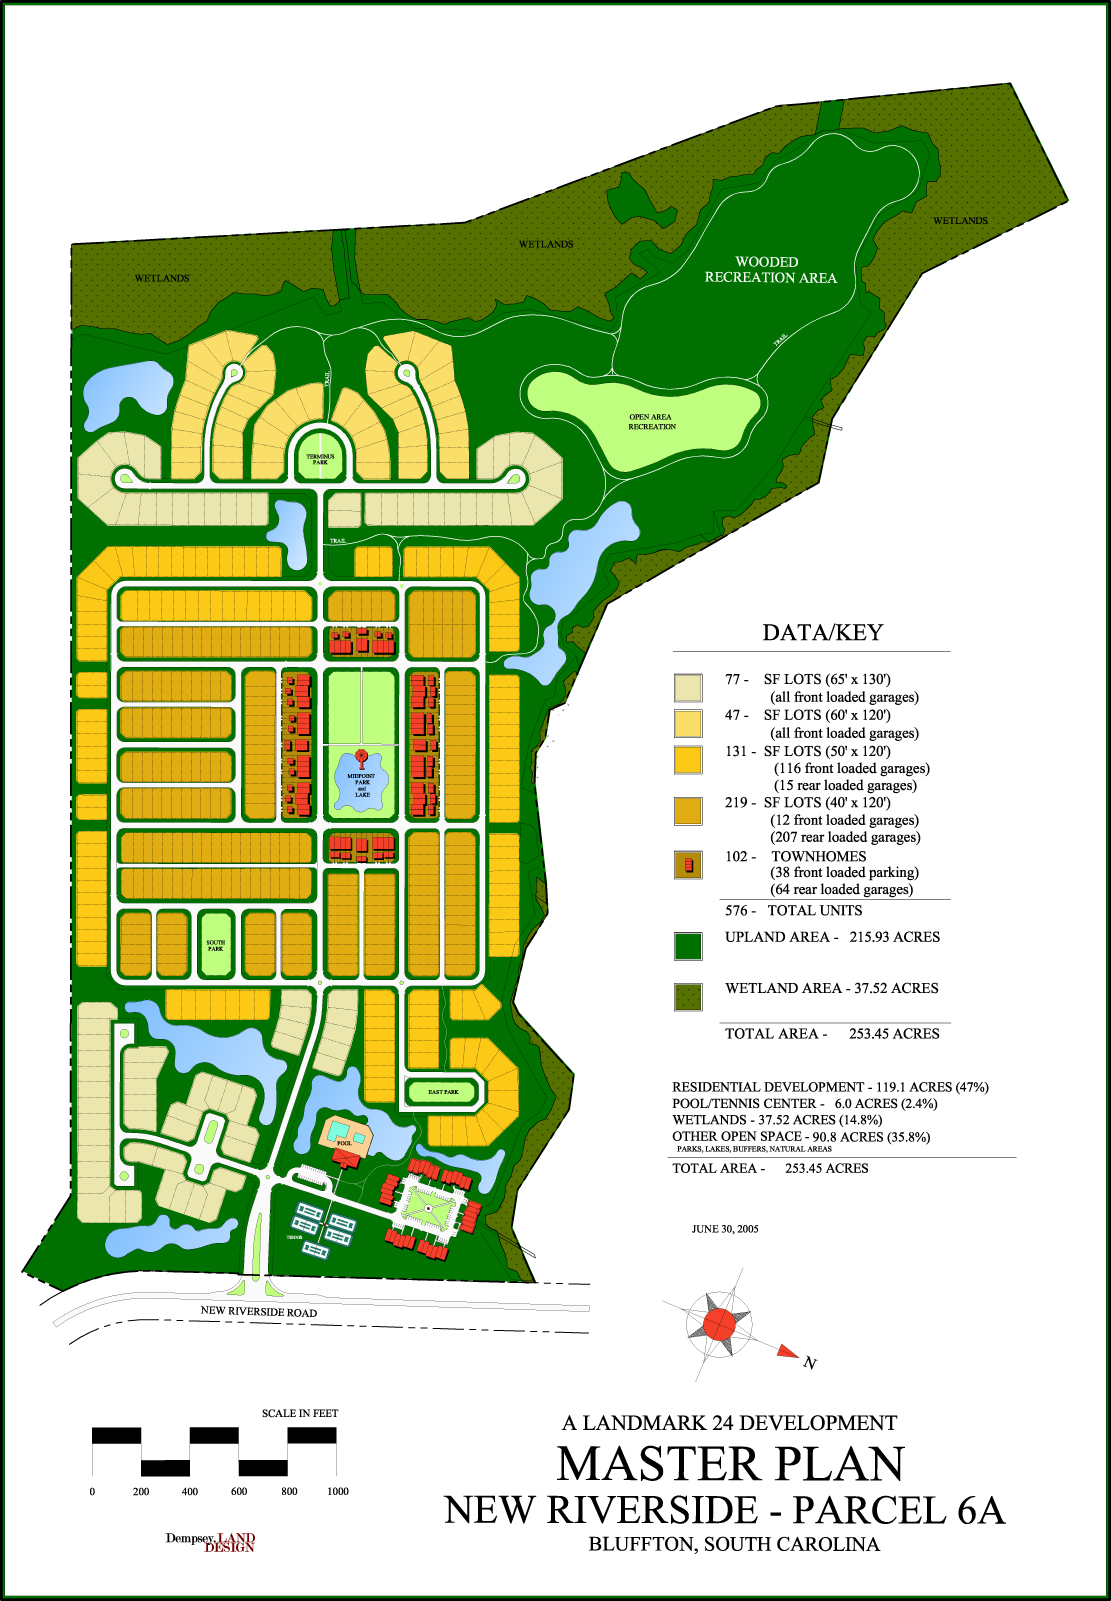 Master Plan for New Riverside, Bluffton, South Carolina